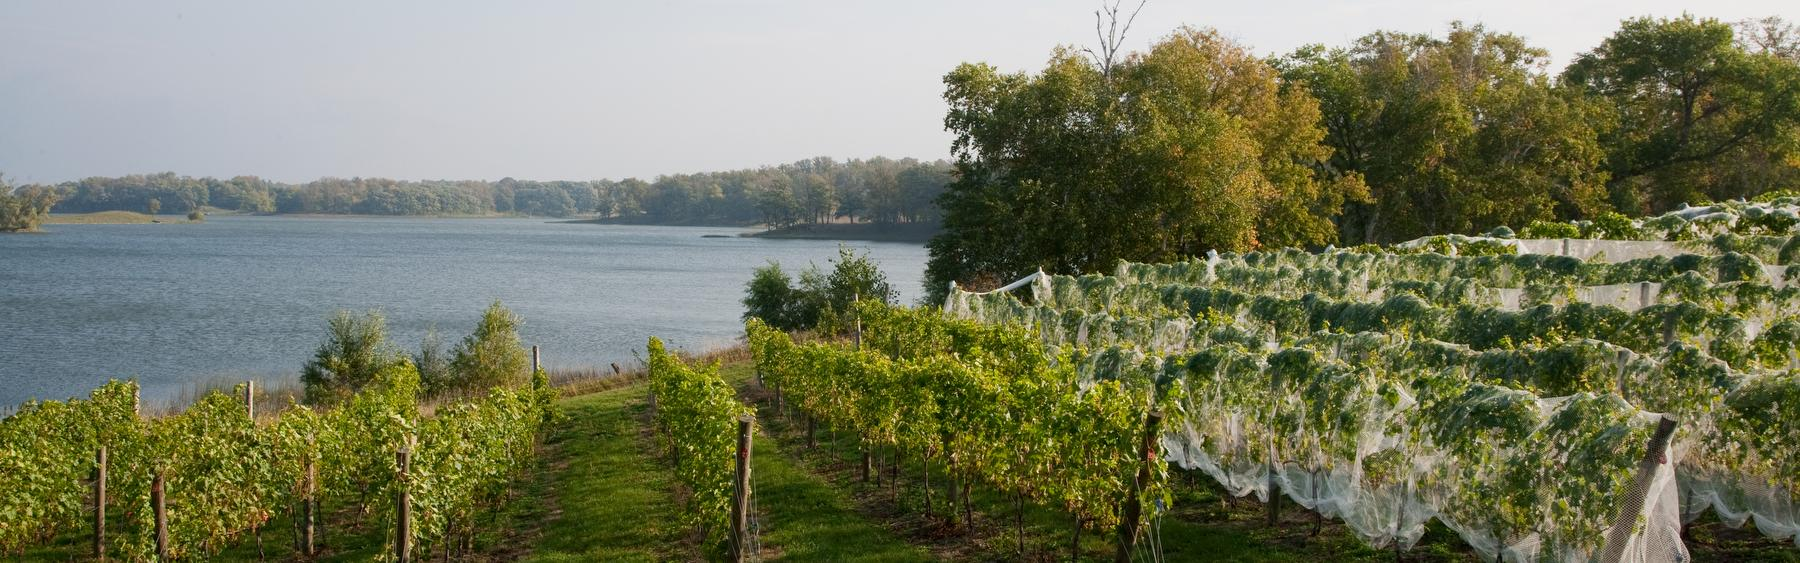 Minnesota vineyard growing U of M wine grape varieties.